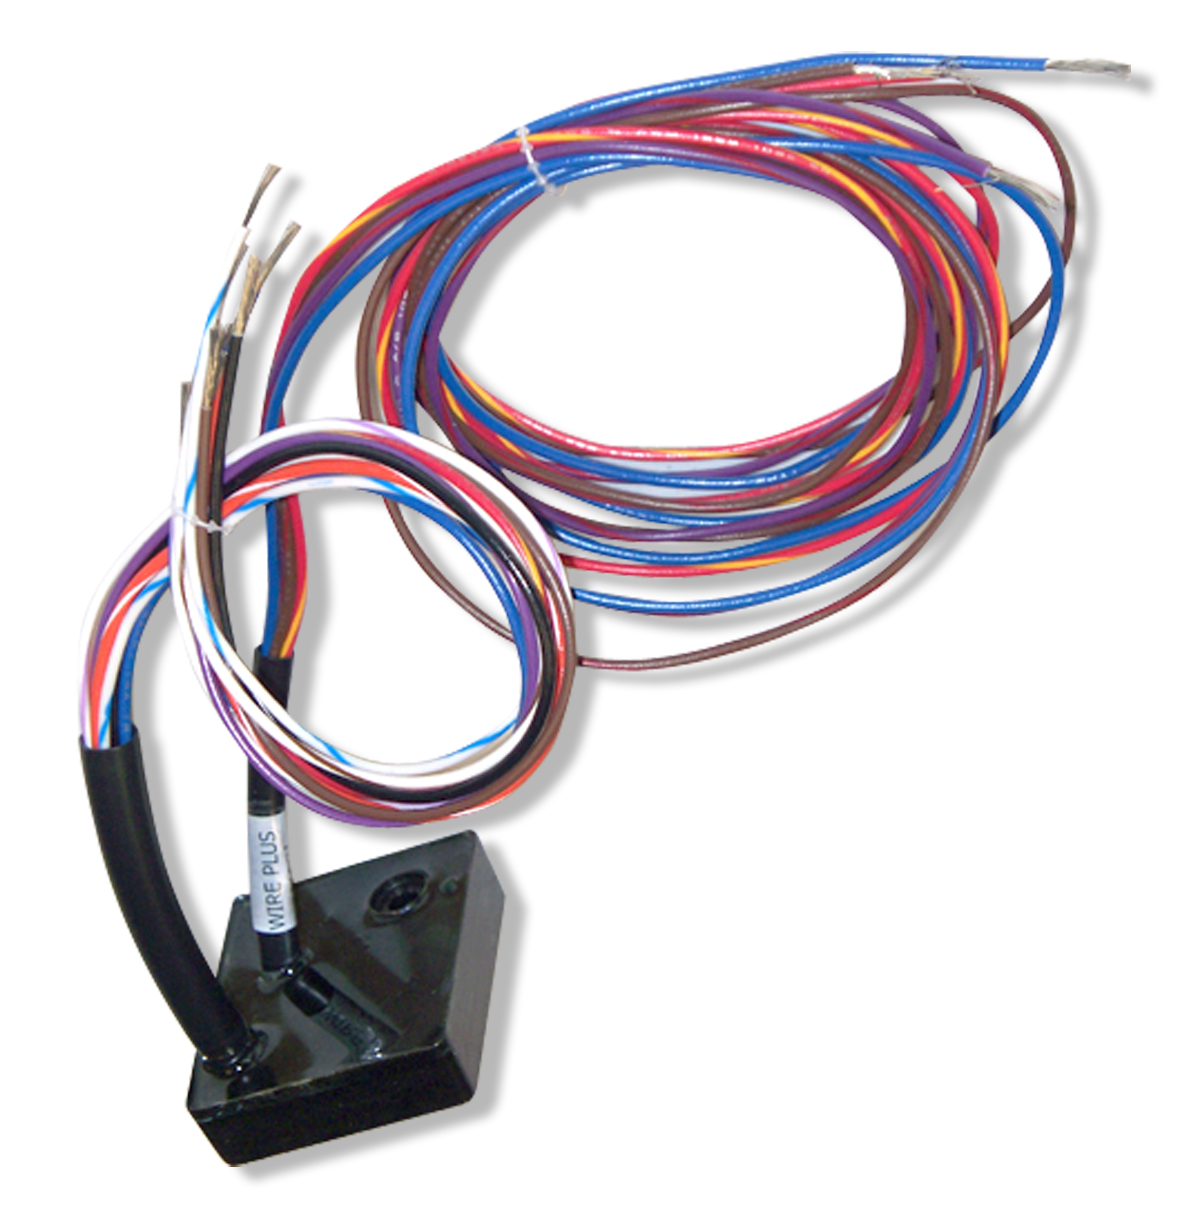 hight resolution of wire plus introduces power lighting control modules and wiringwire plus wiring harness 3